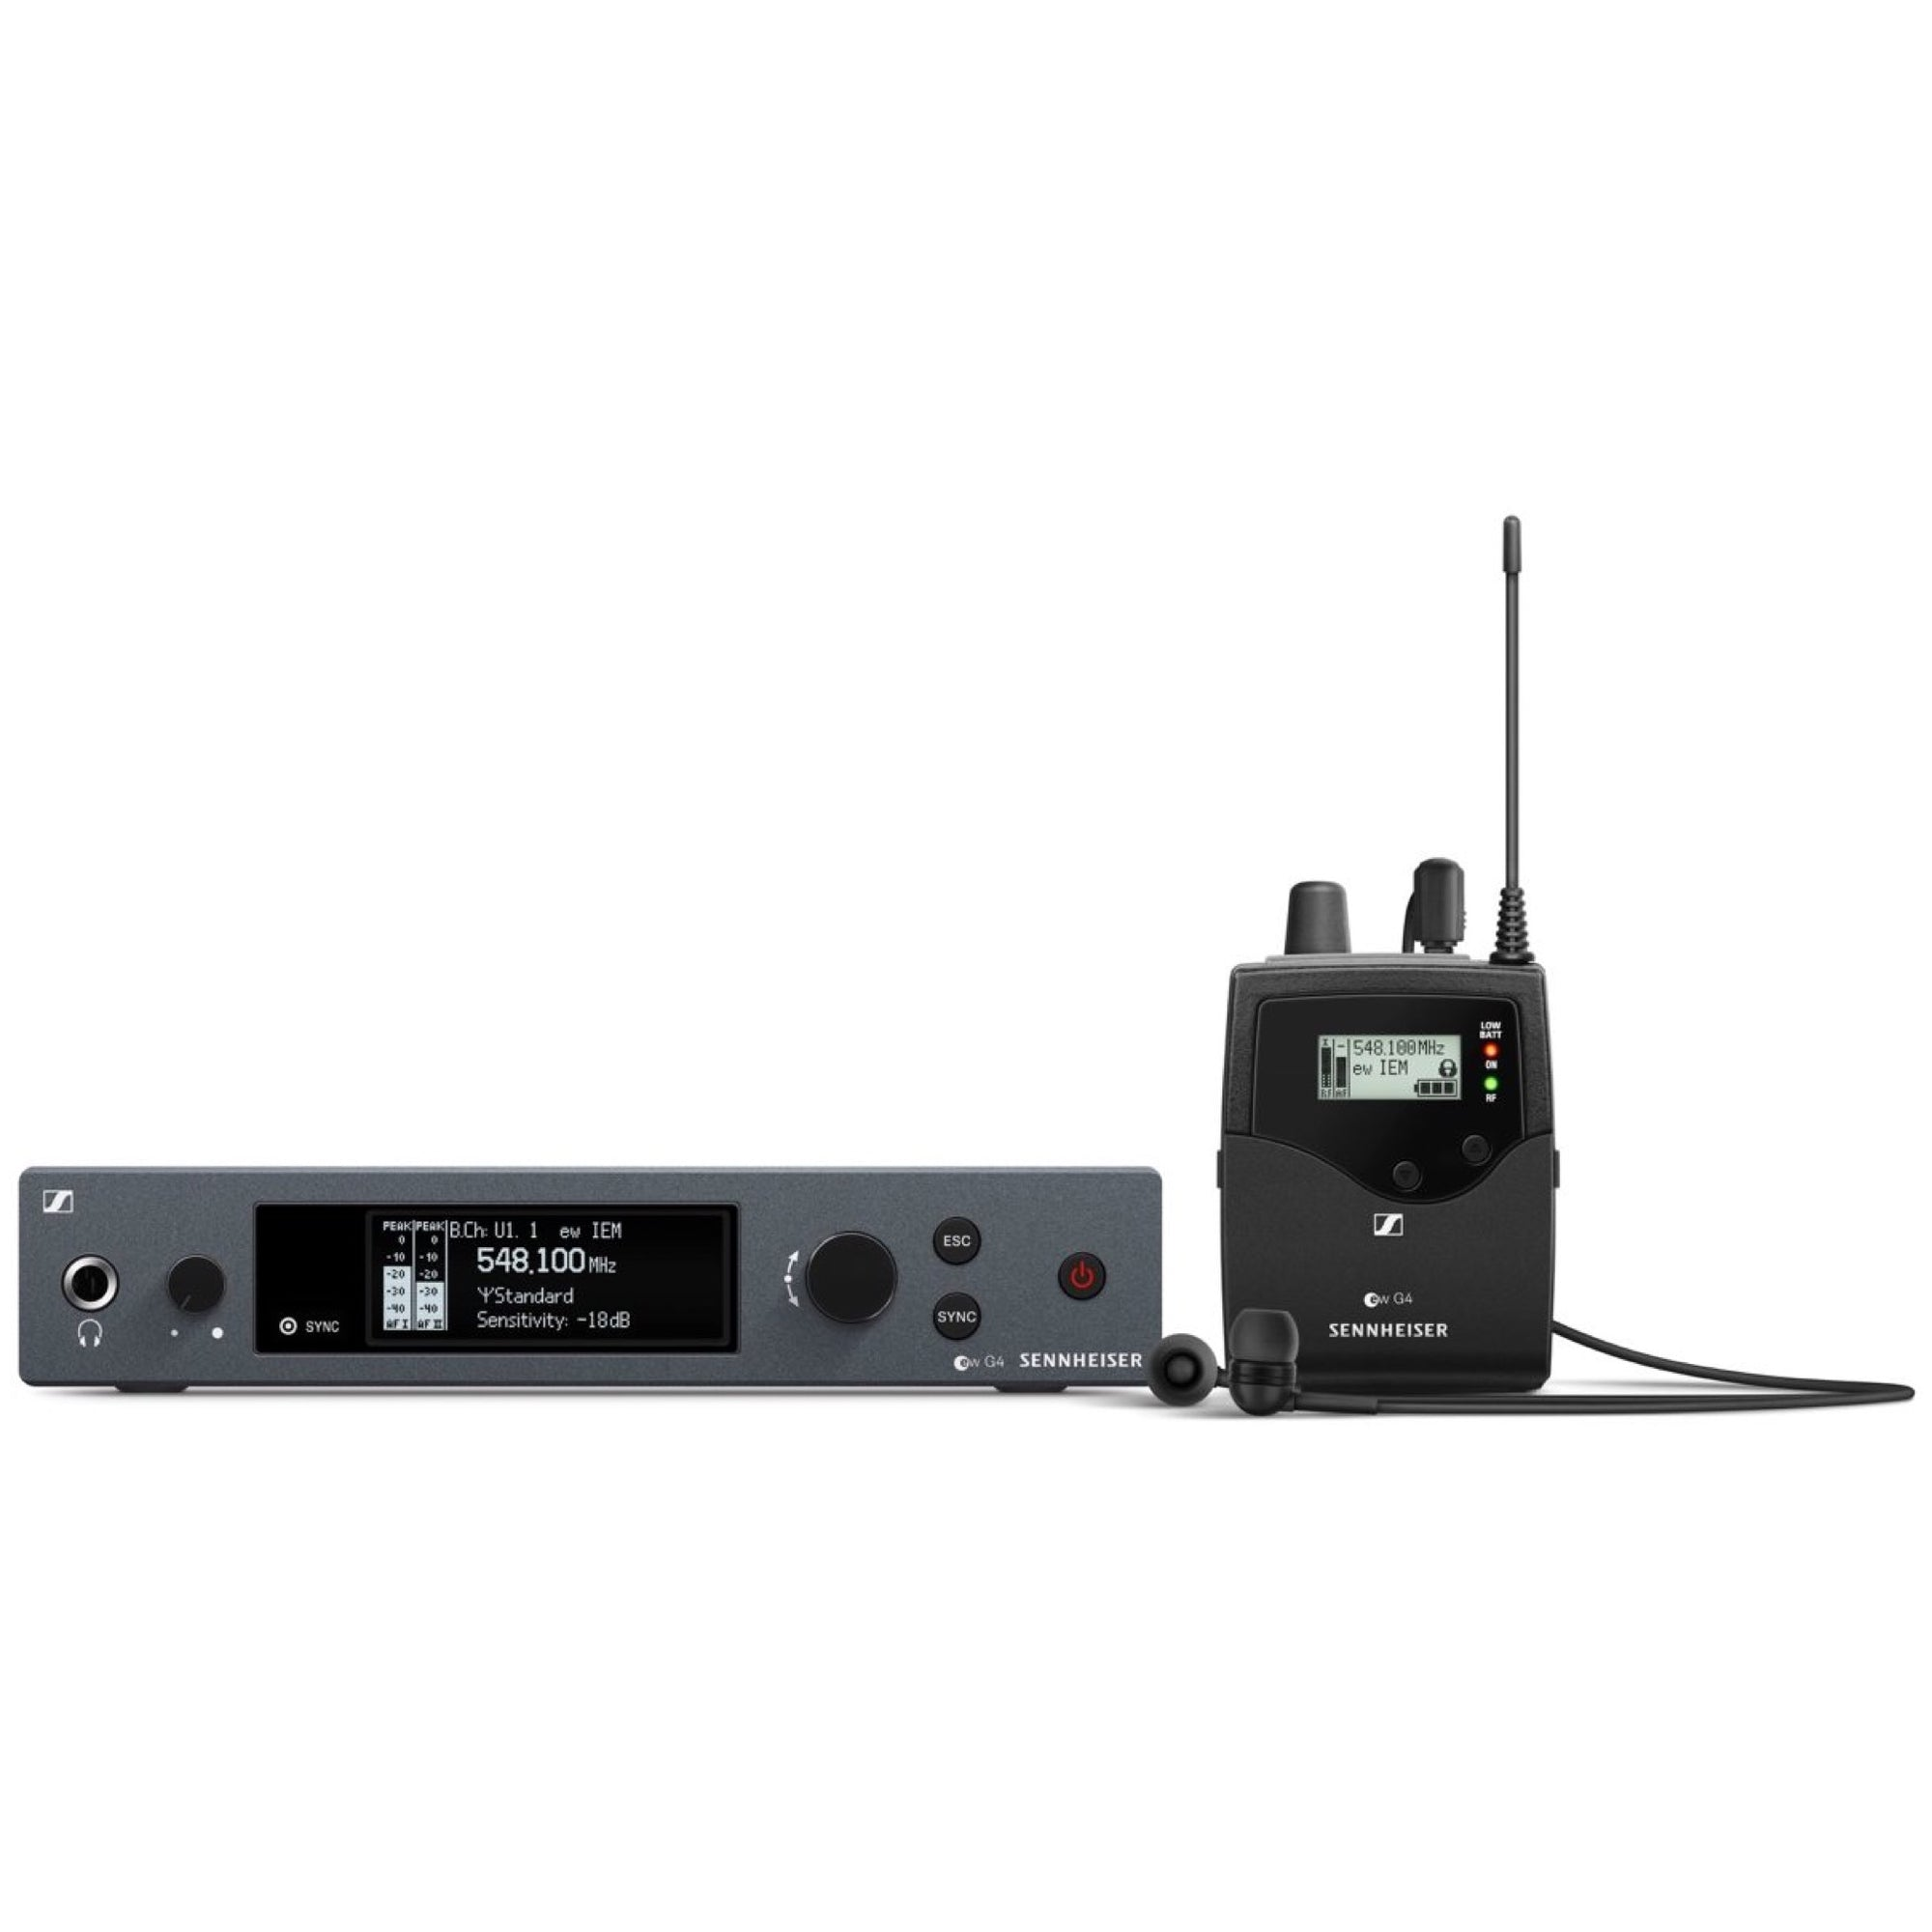 Sennheiser EW IEM G4 Wireless In-Ear Monitor System, Band A (516-558 MHz)